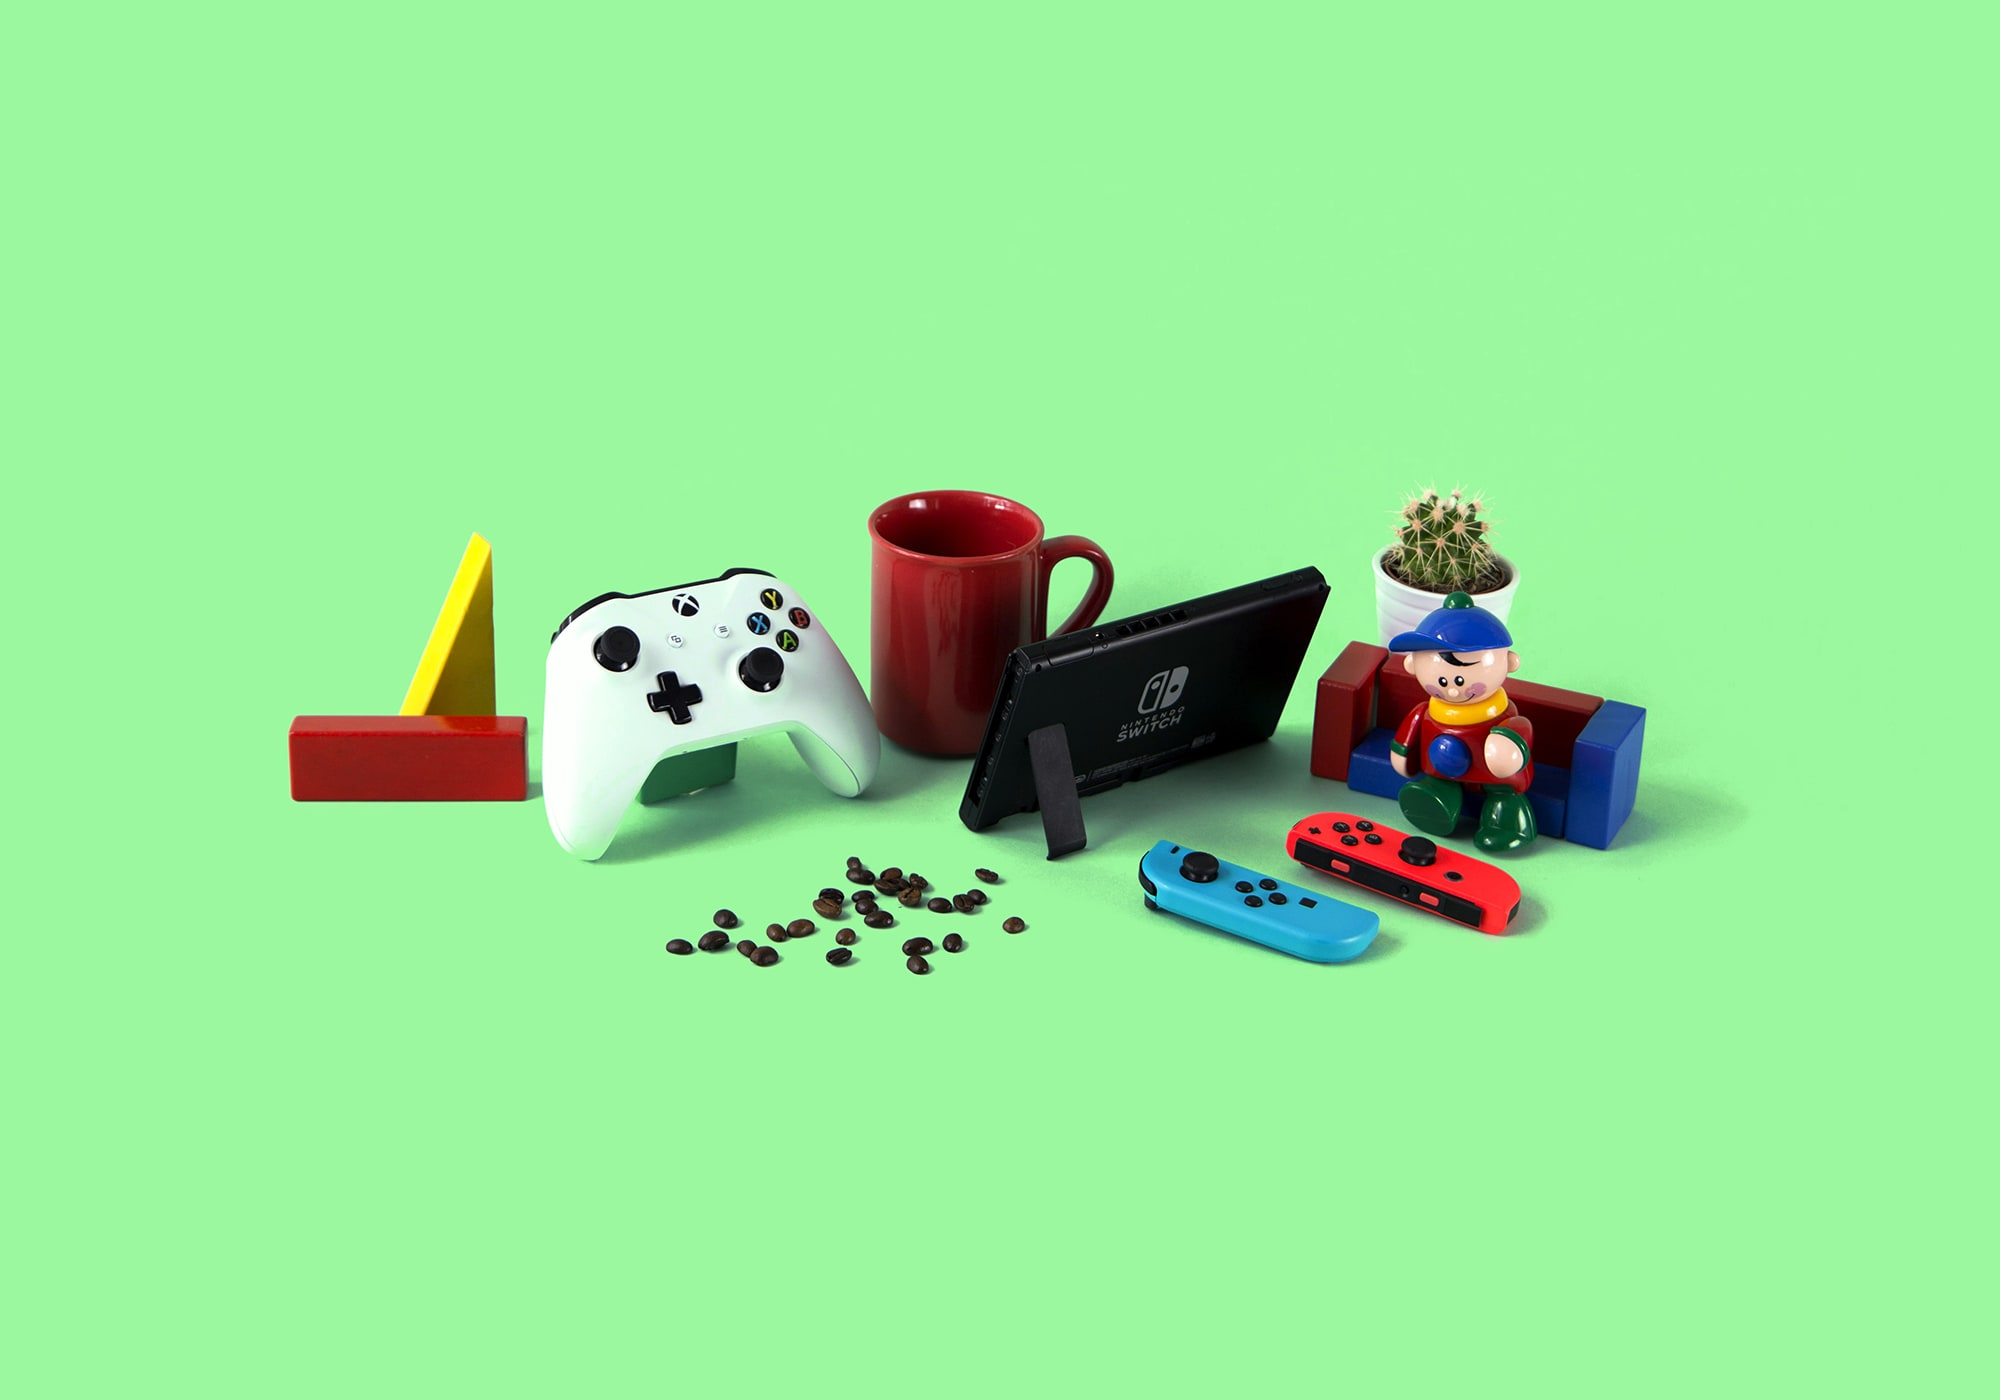 Get set up for work and play -